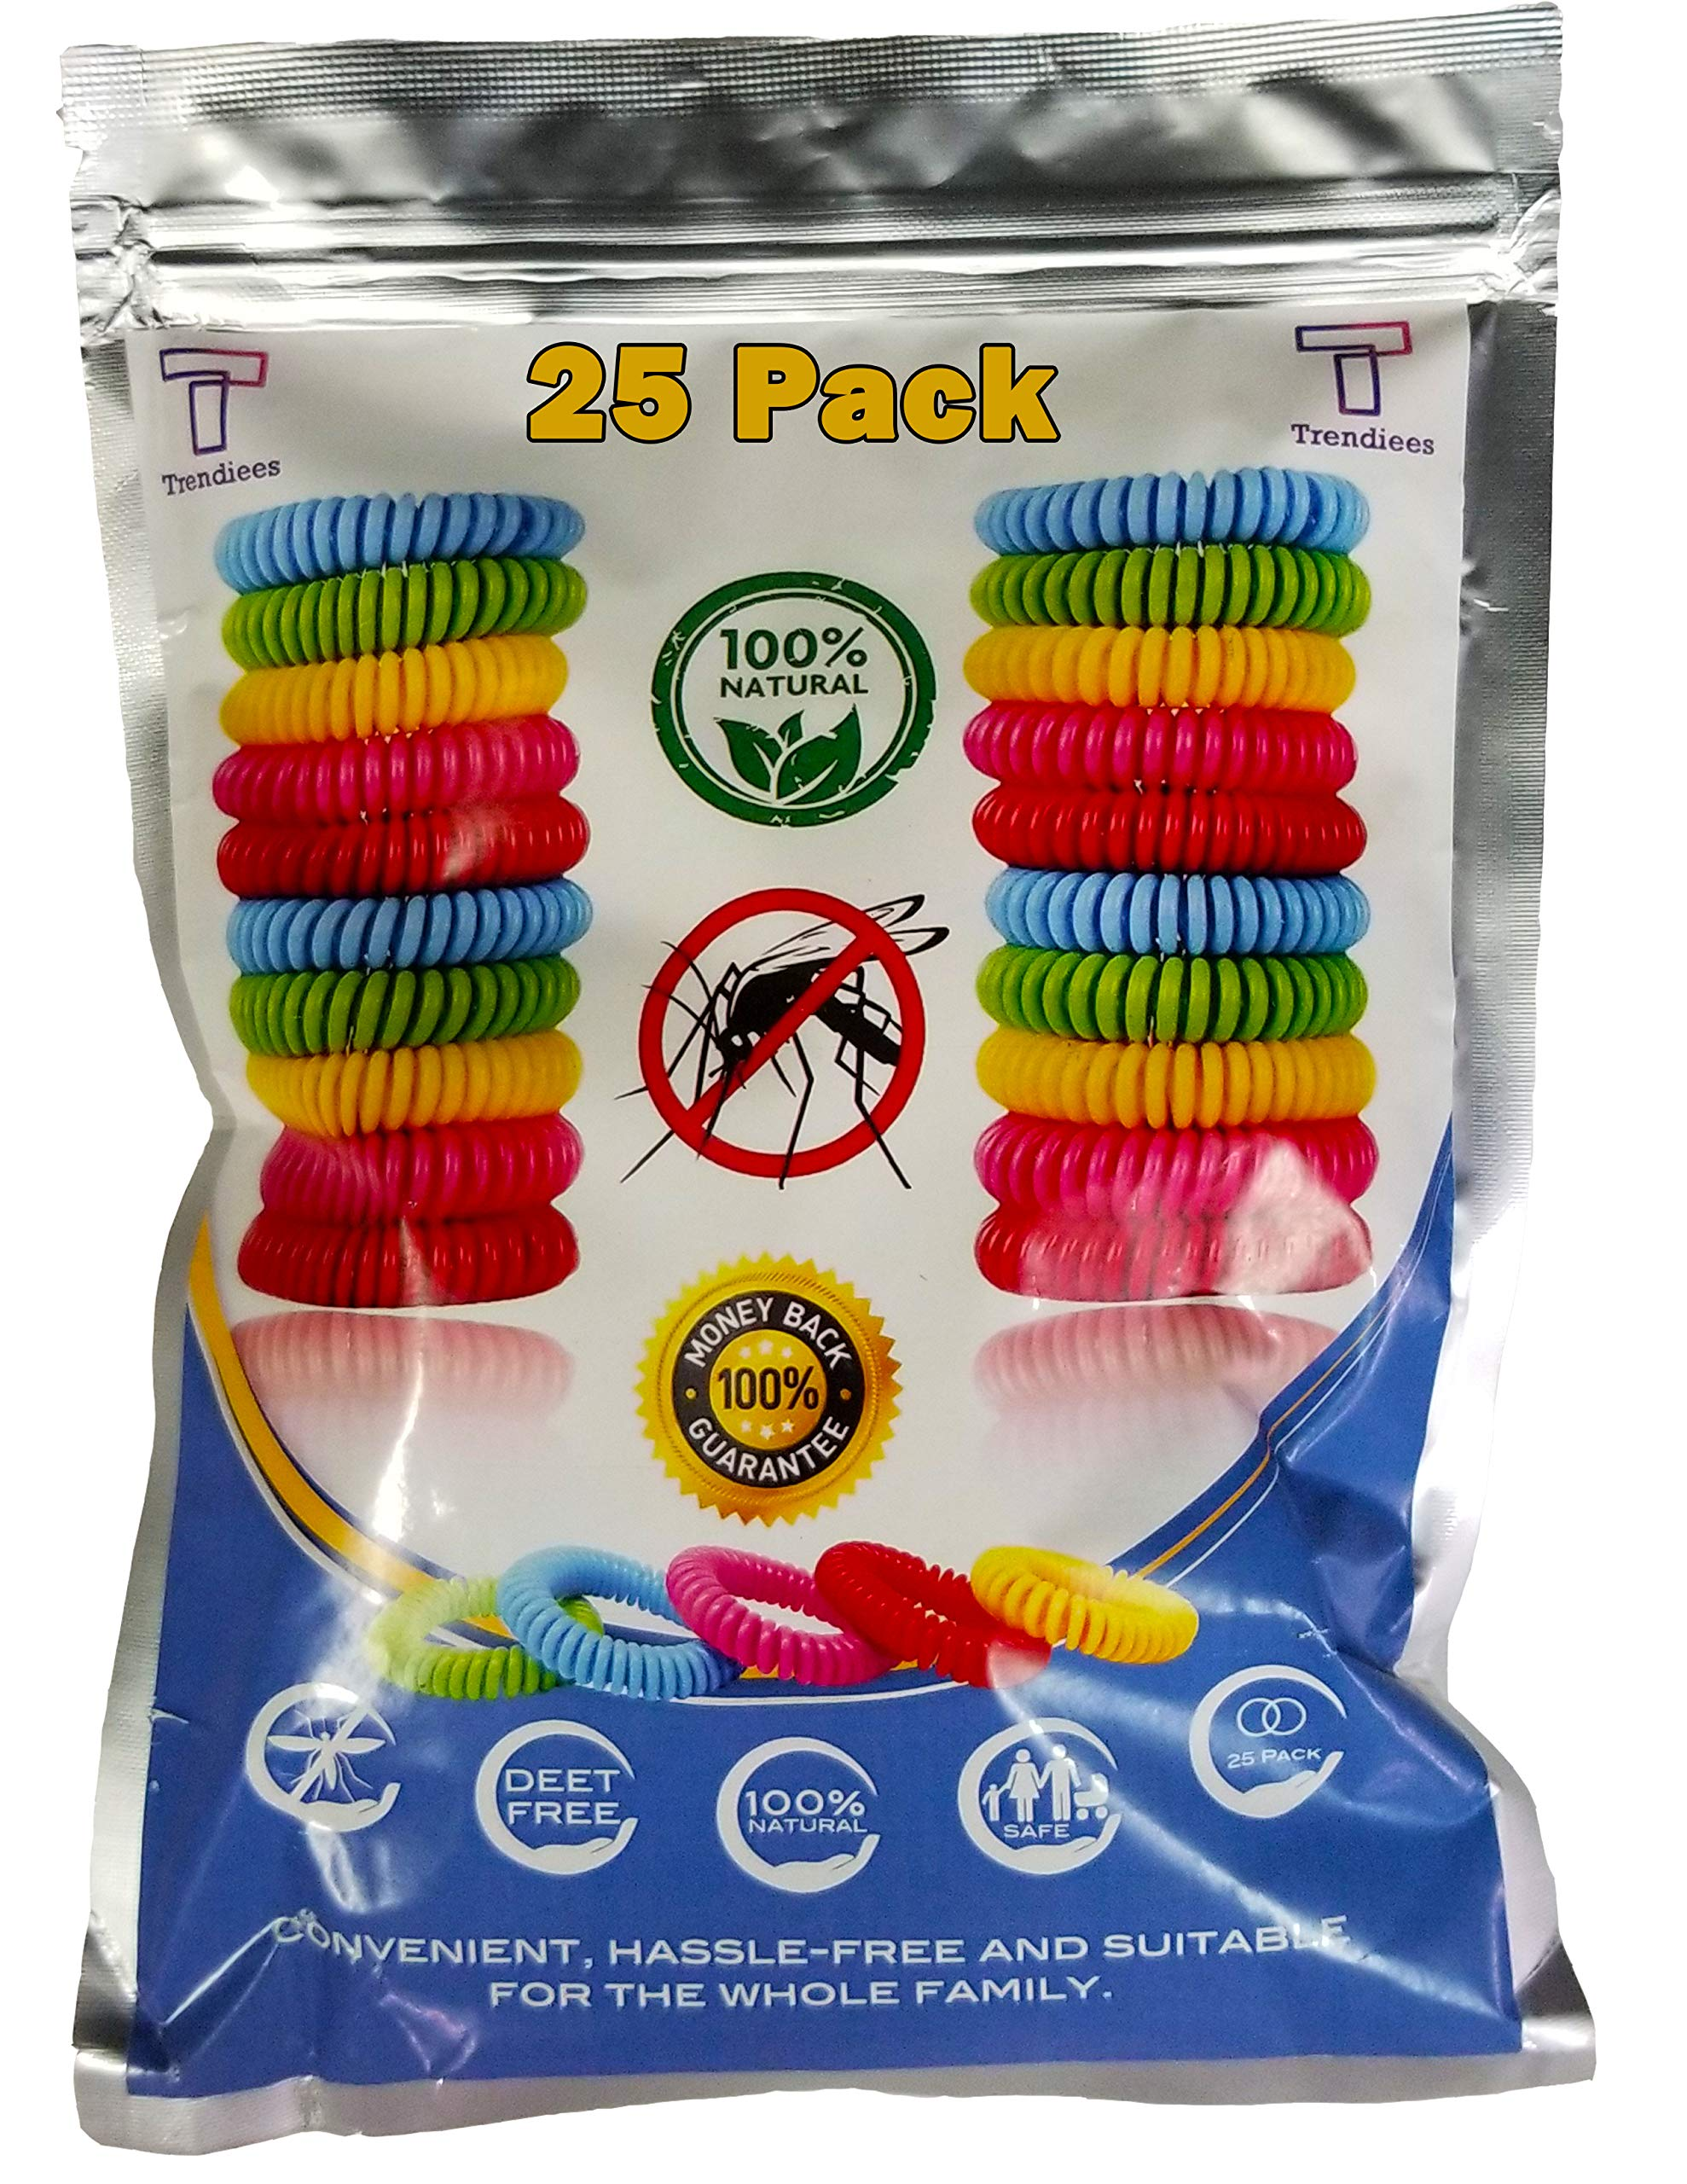 Mosquito Repellent Bracelet Bug Bands for Kids, Adults & Pets - Easy & Comfortable Citronella Anti Pest Protection - No More Bug Spray! + 6 Free Repellent Patches, Waterproof, 100% Natural (25 Pack) by Bierstick